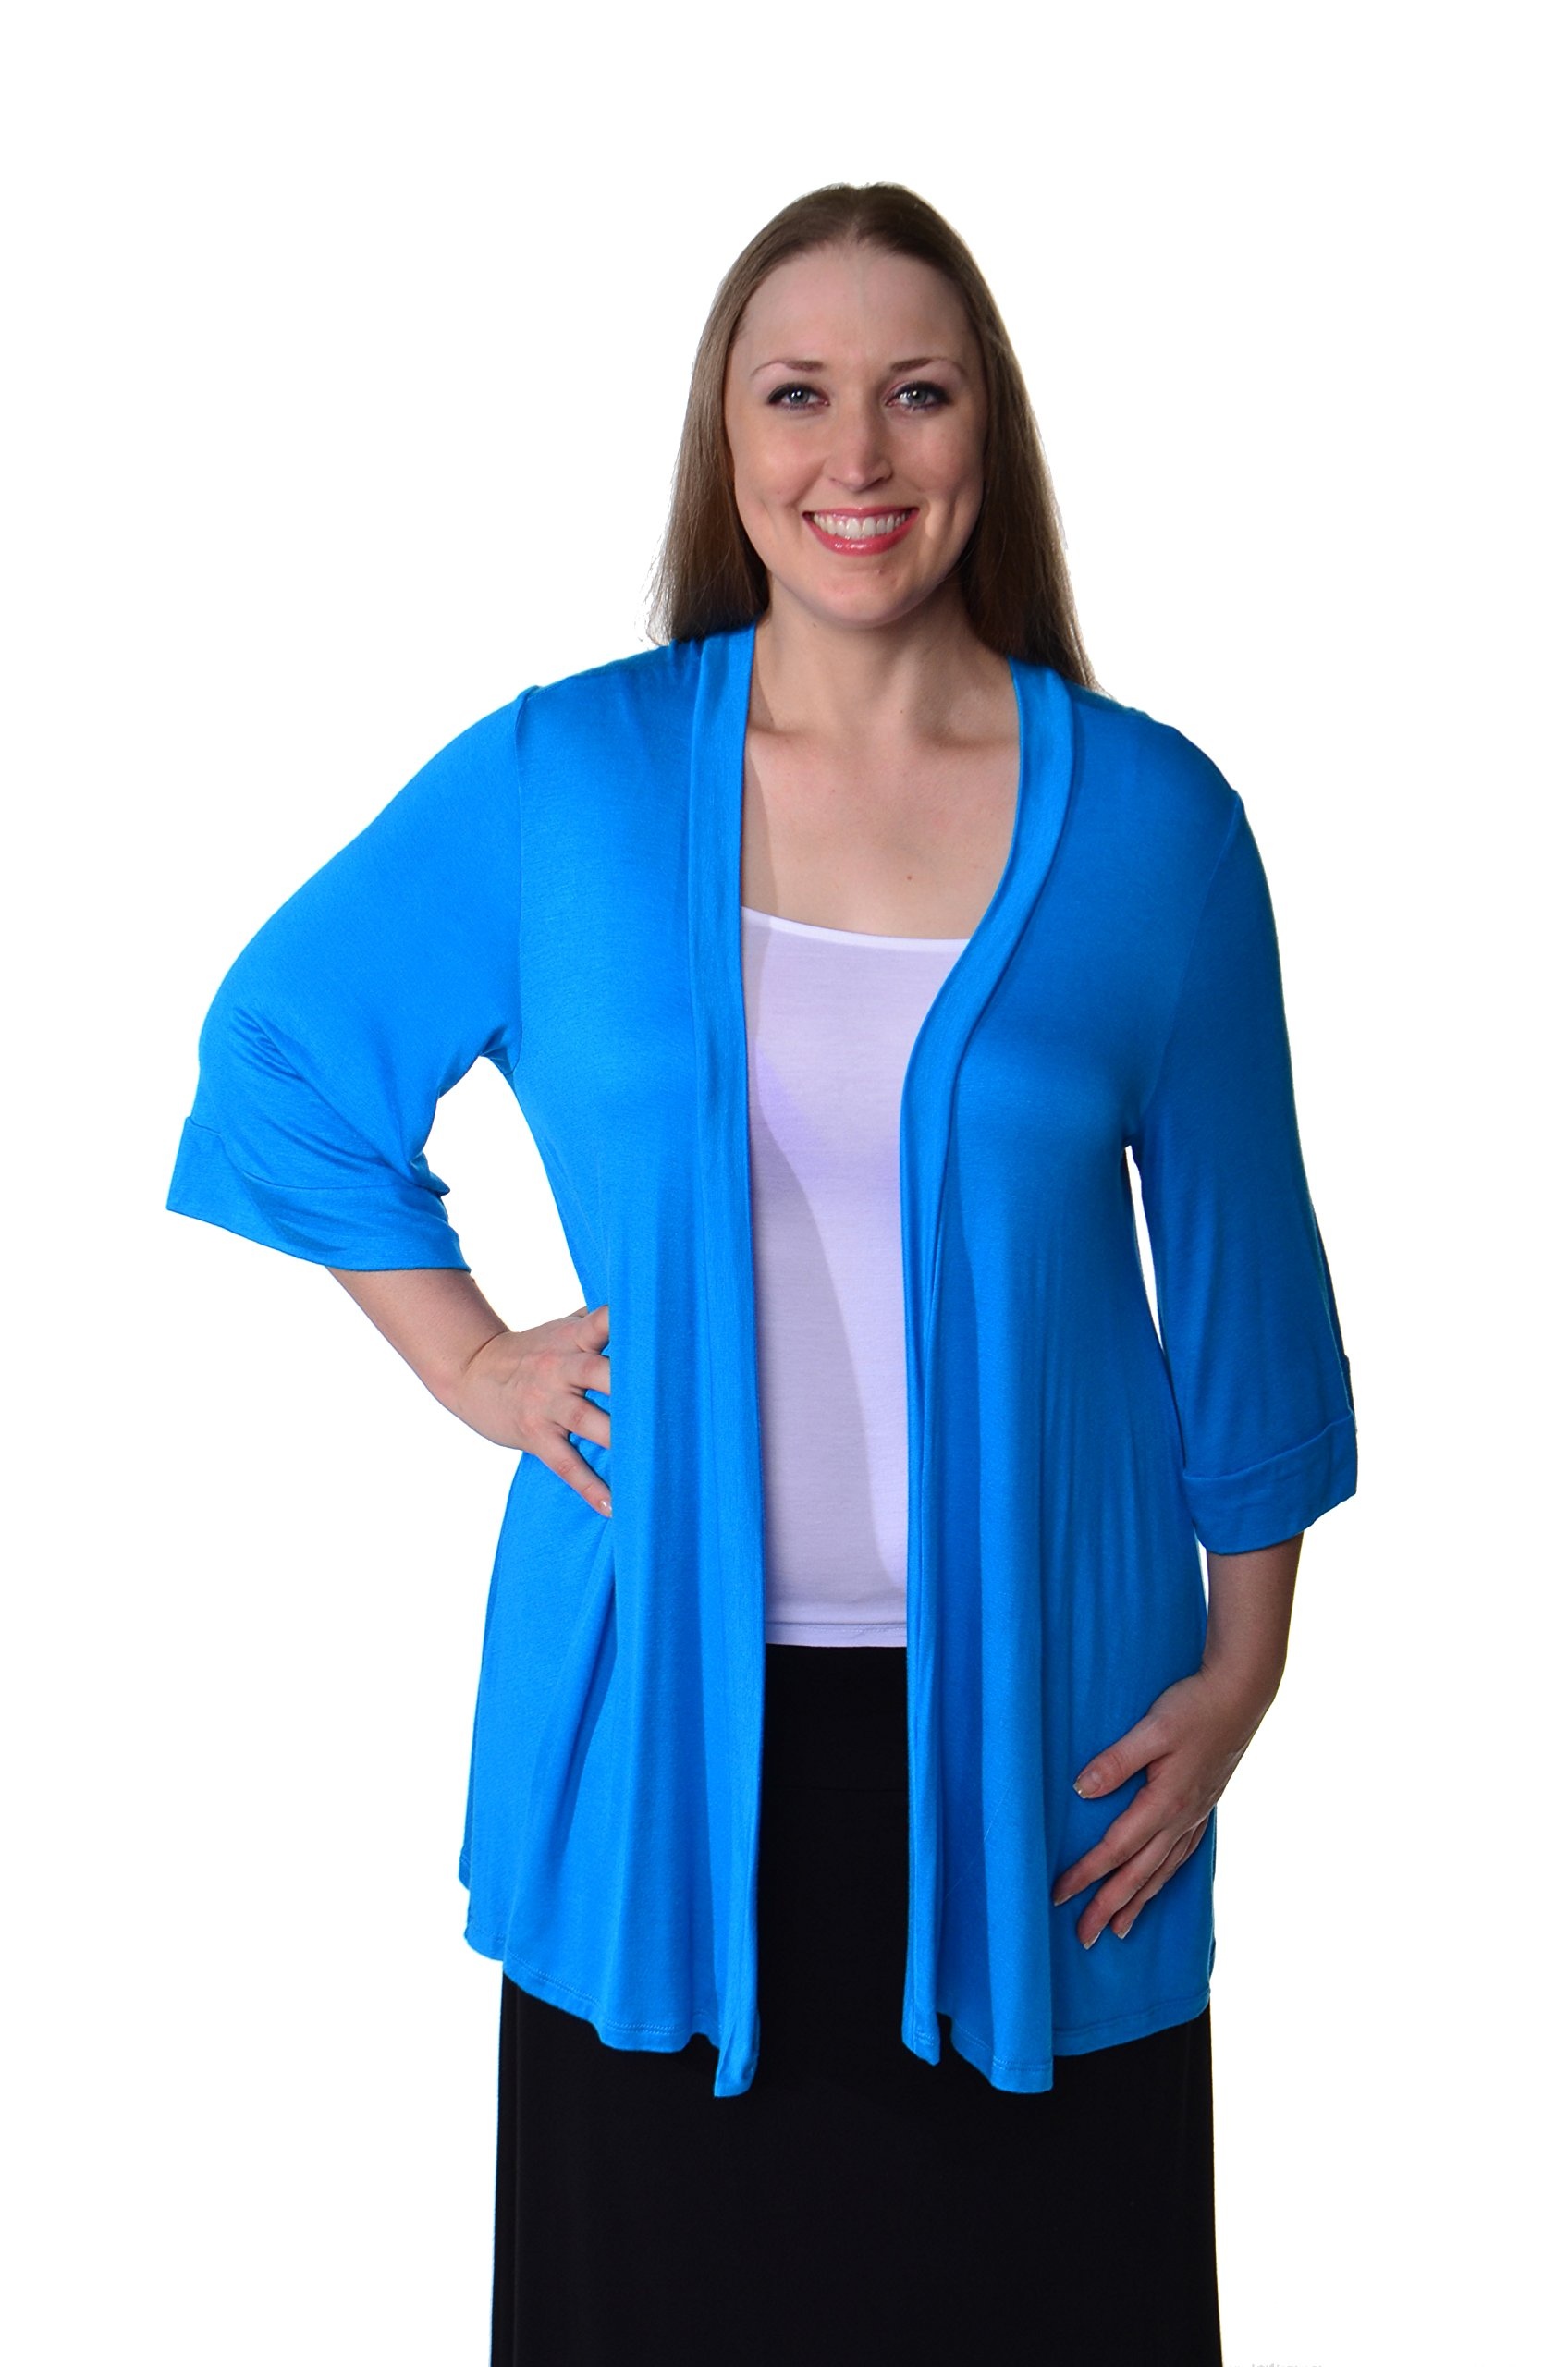 24/7 Comfort Apparel Plus Size Cardigan 3/4 Sleeve Open Neck Top for Womens Plus Size Clothing - Made in USA - 2XL (Turq)